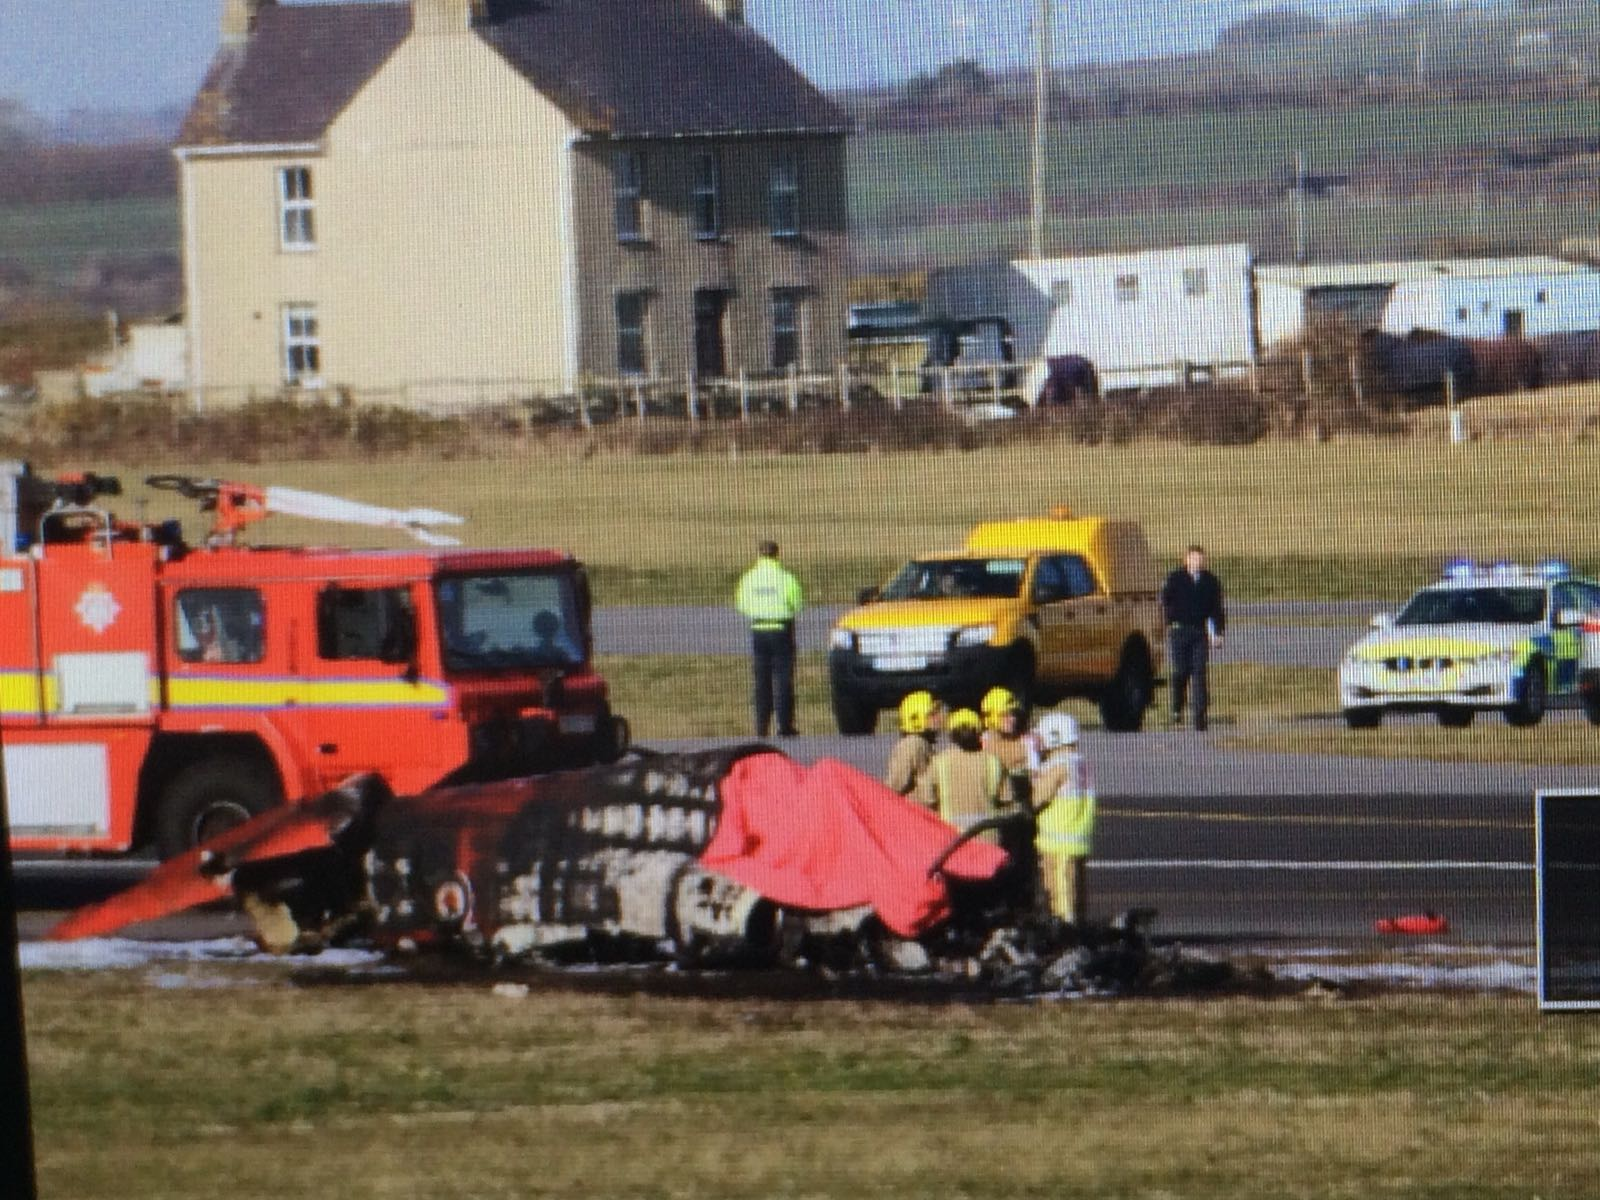 Red Arrows' plane crashes at RAF base